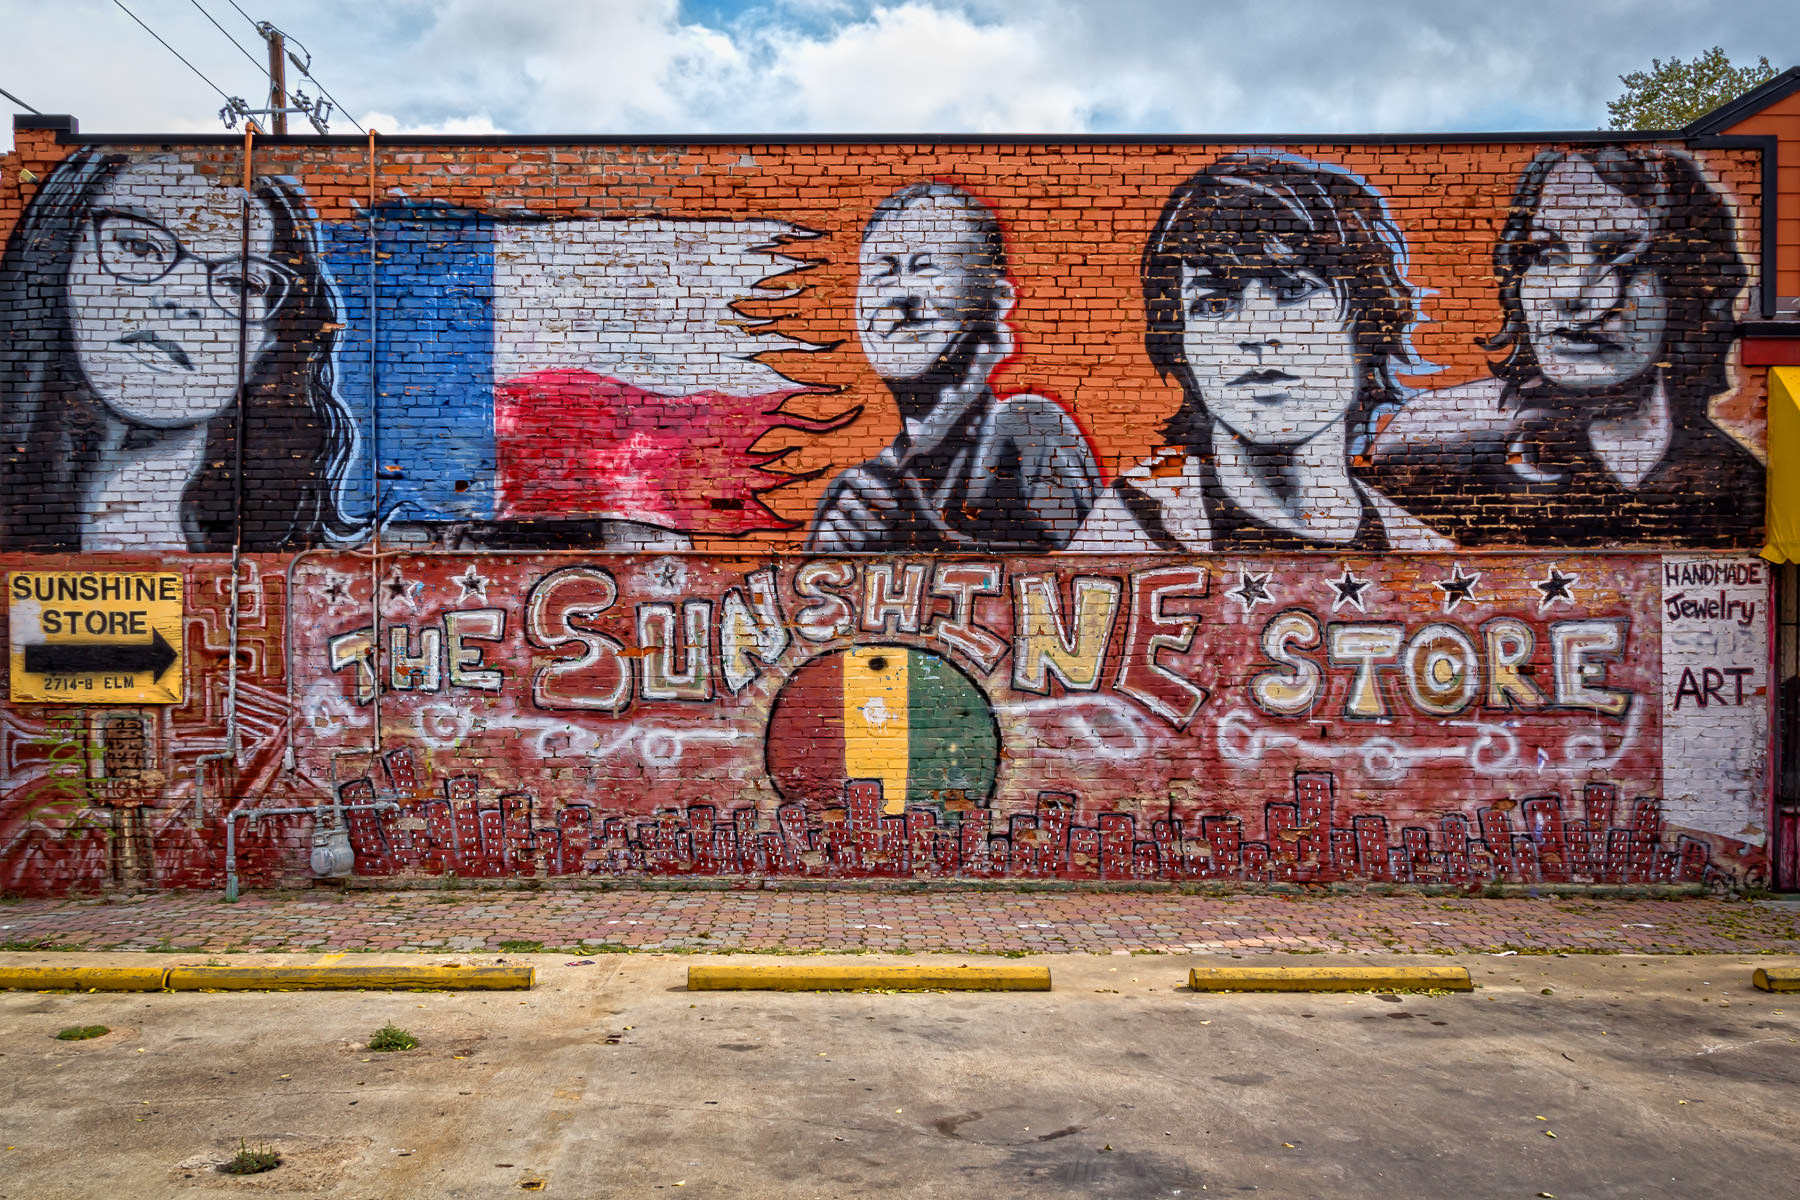 A mural on the outside of The Sunshine Store in Dallas' Deep Ellum neighborhood.